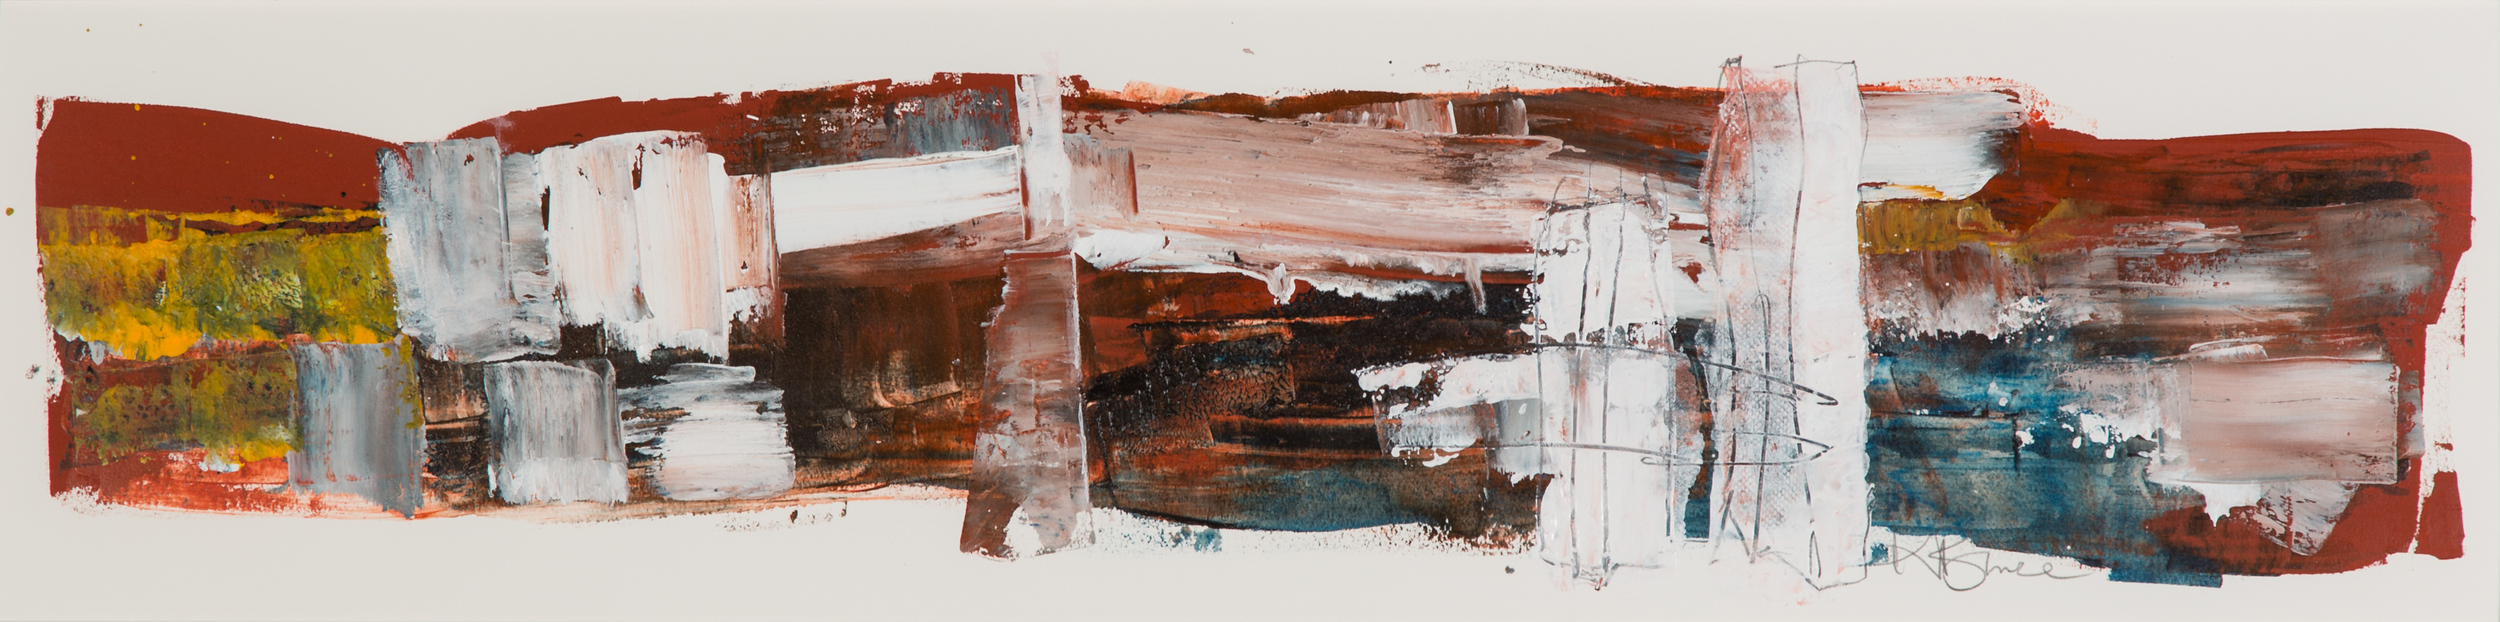 KB-068, Katharine Bruce, Stand off, Acrylic on Paper, 2015, 44x10, $2,350